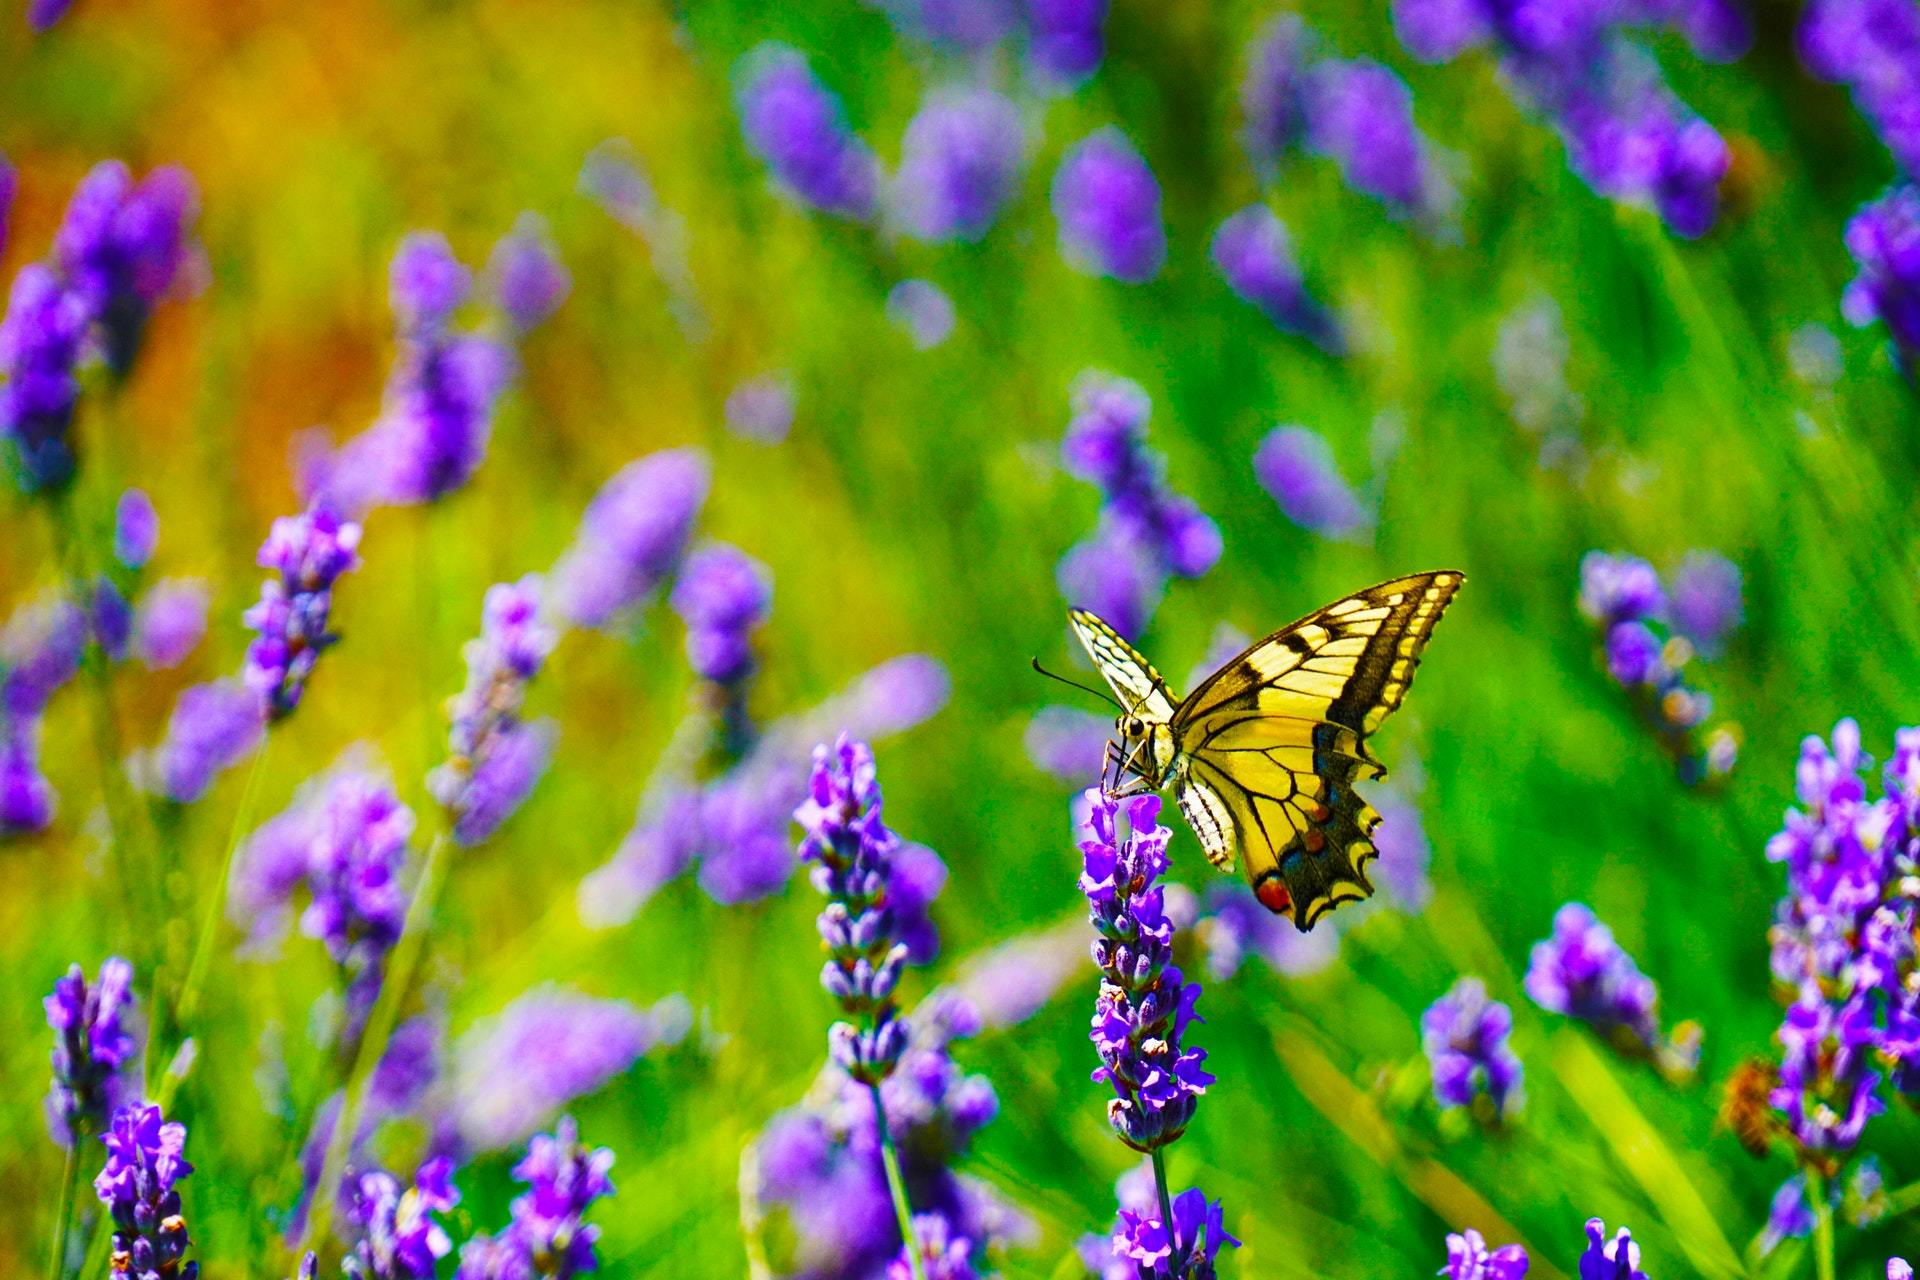 Butterfly landing on a butterfly bush also called summer lilac.